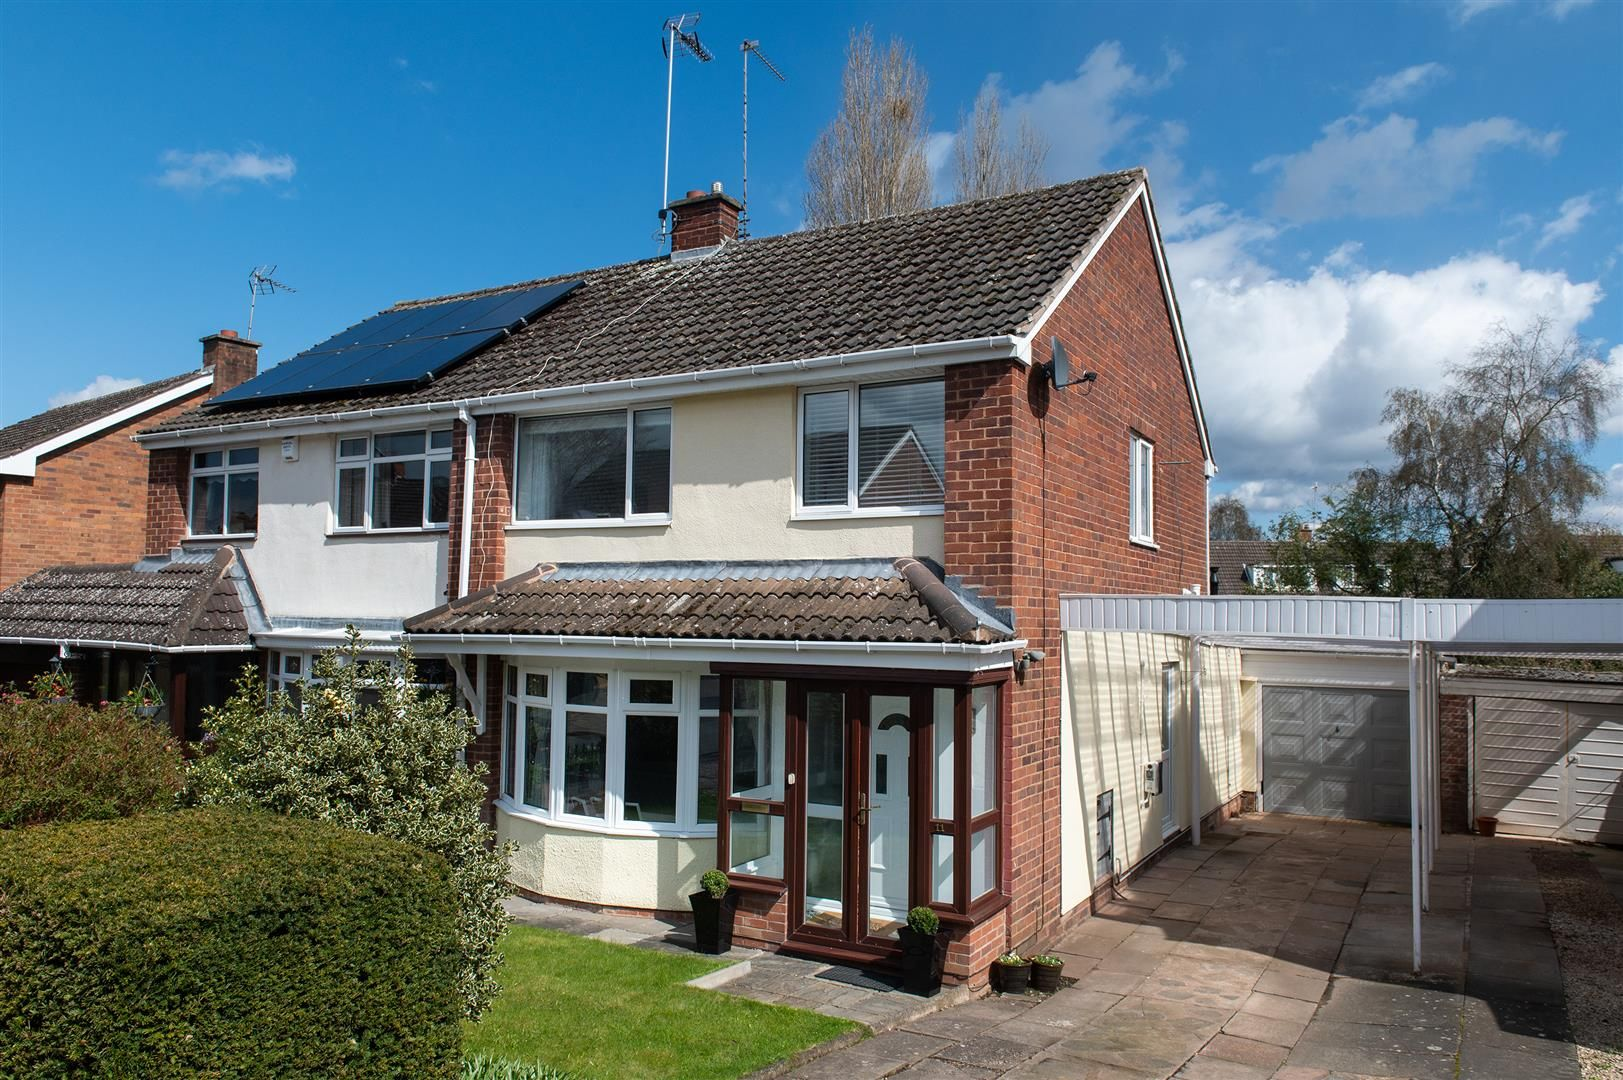 3 bed semi-detached for sale in Hagley 33